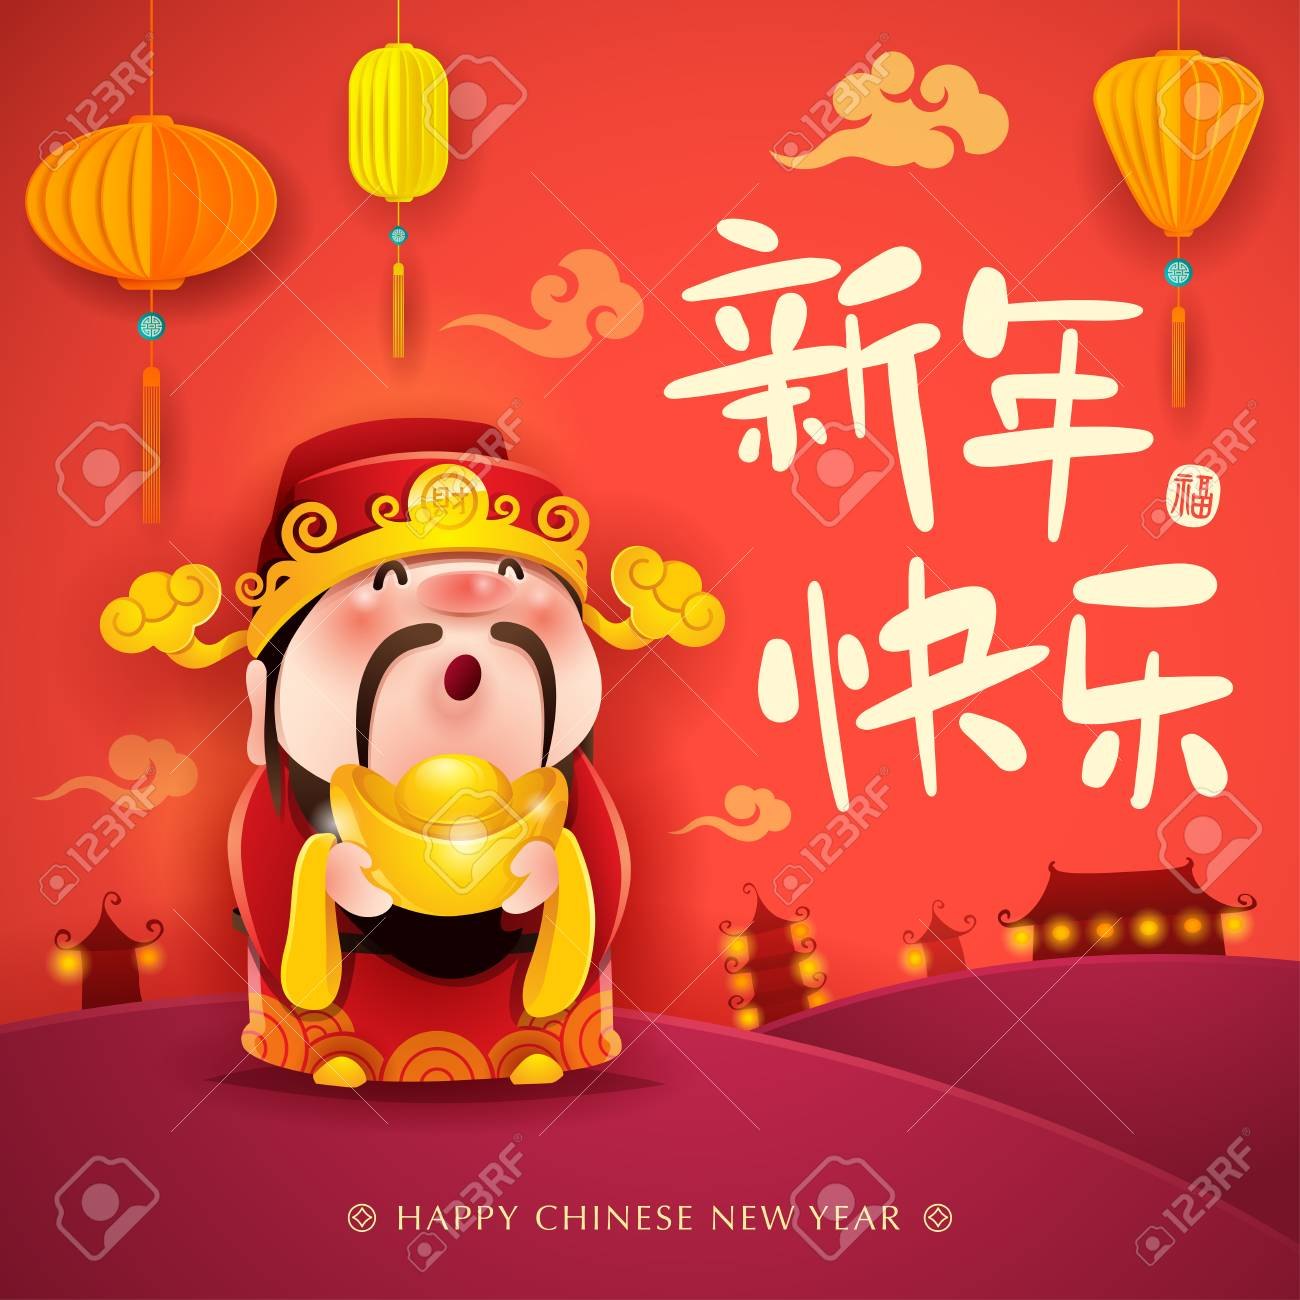 Happy New Year 2019. Chinese New Year. The year of the pig. Chinese God of Wealth. Translation : (title) Happy New Year. - 114268302